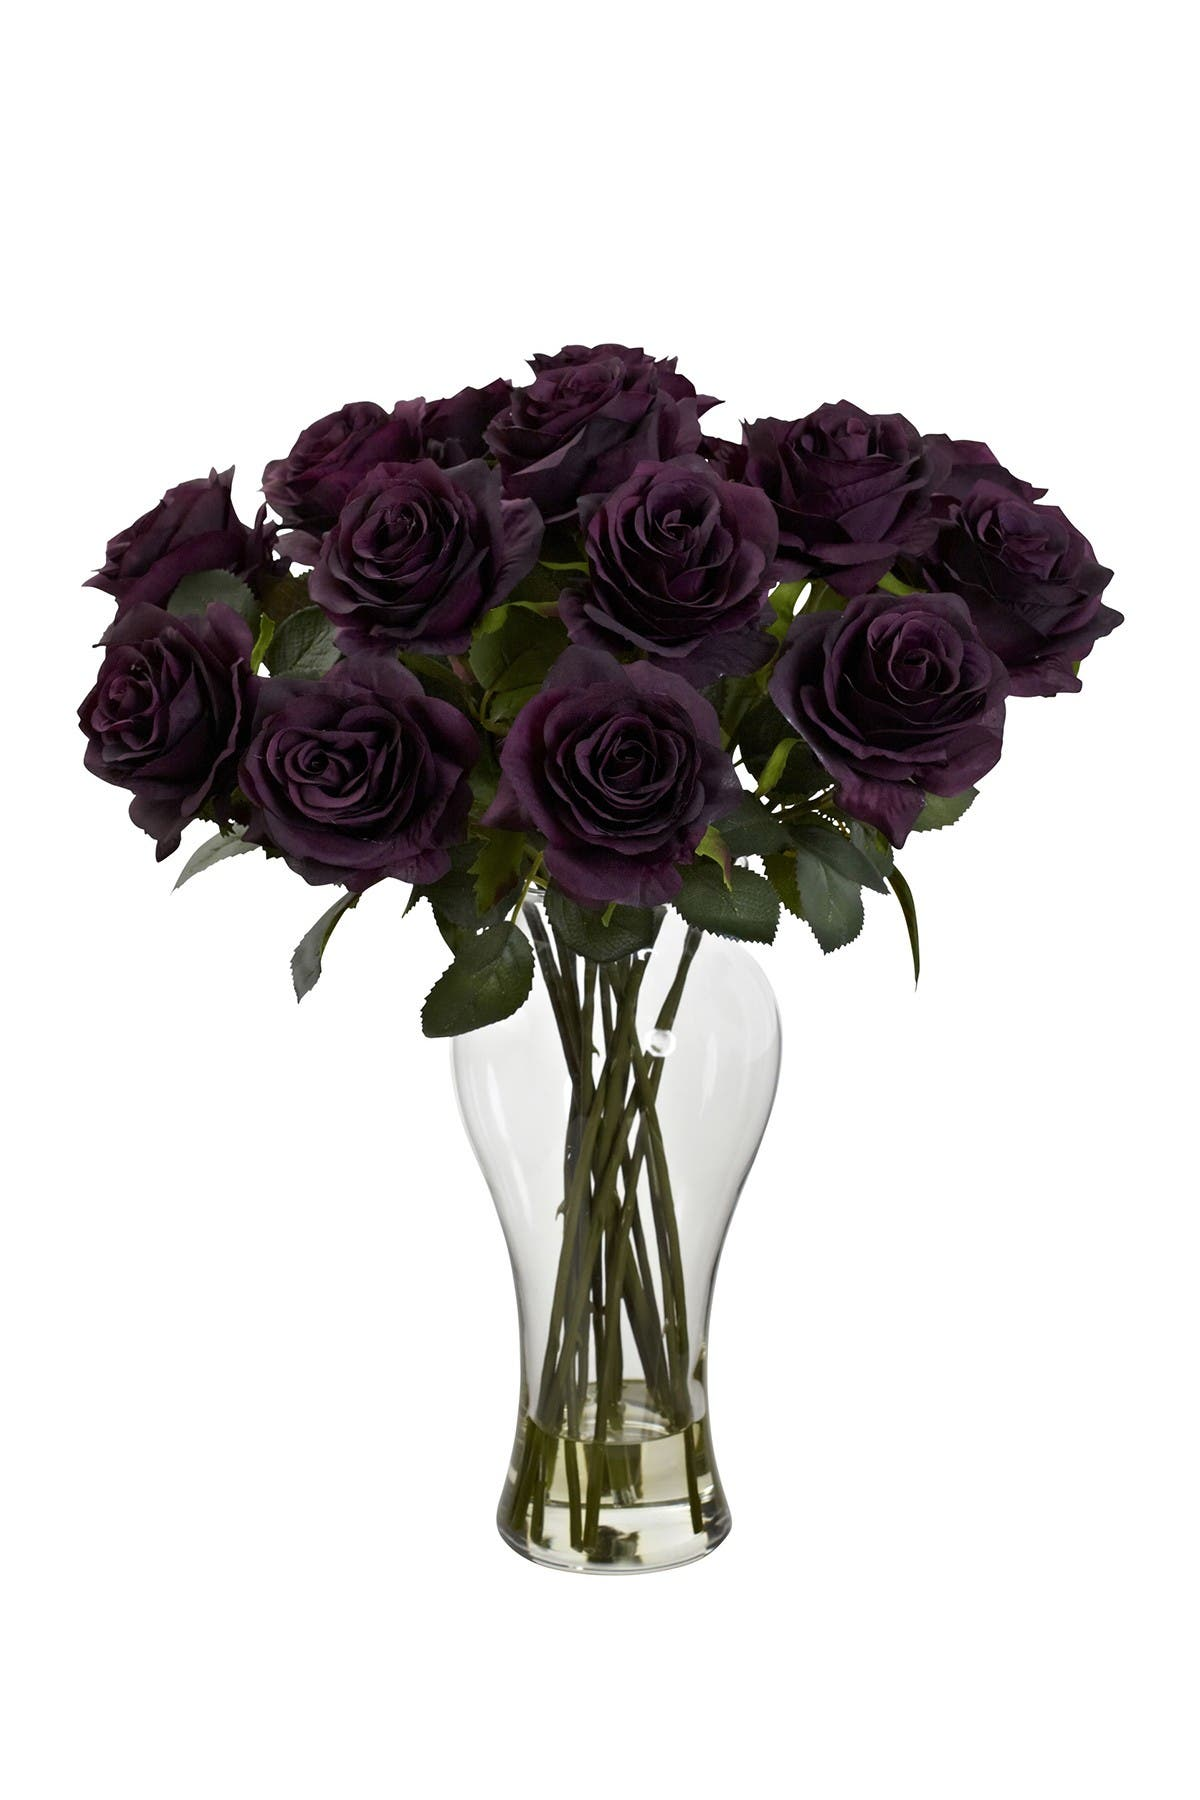 Image of NEARLY NATURAL Blooming Roses with Vase